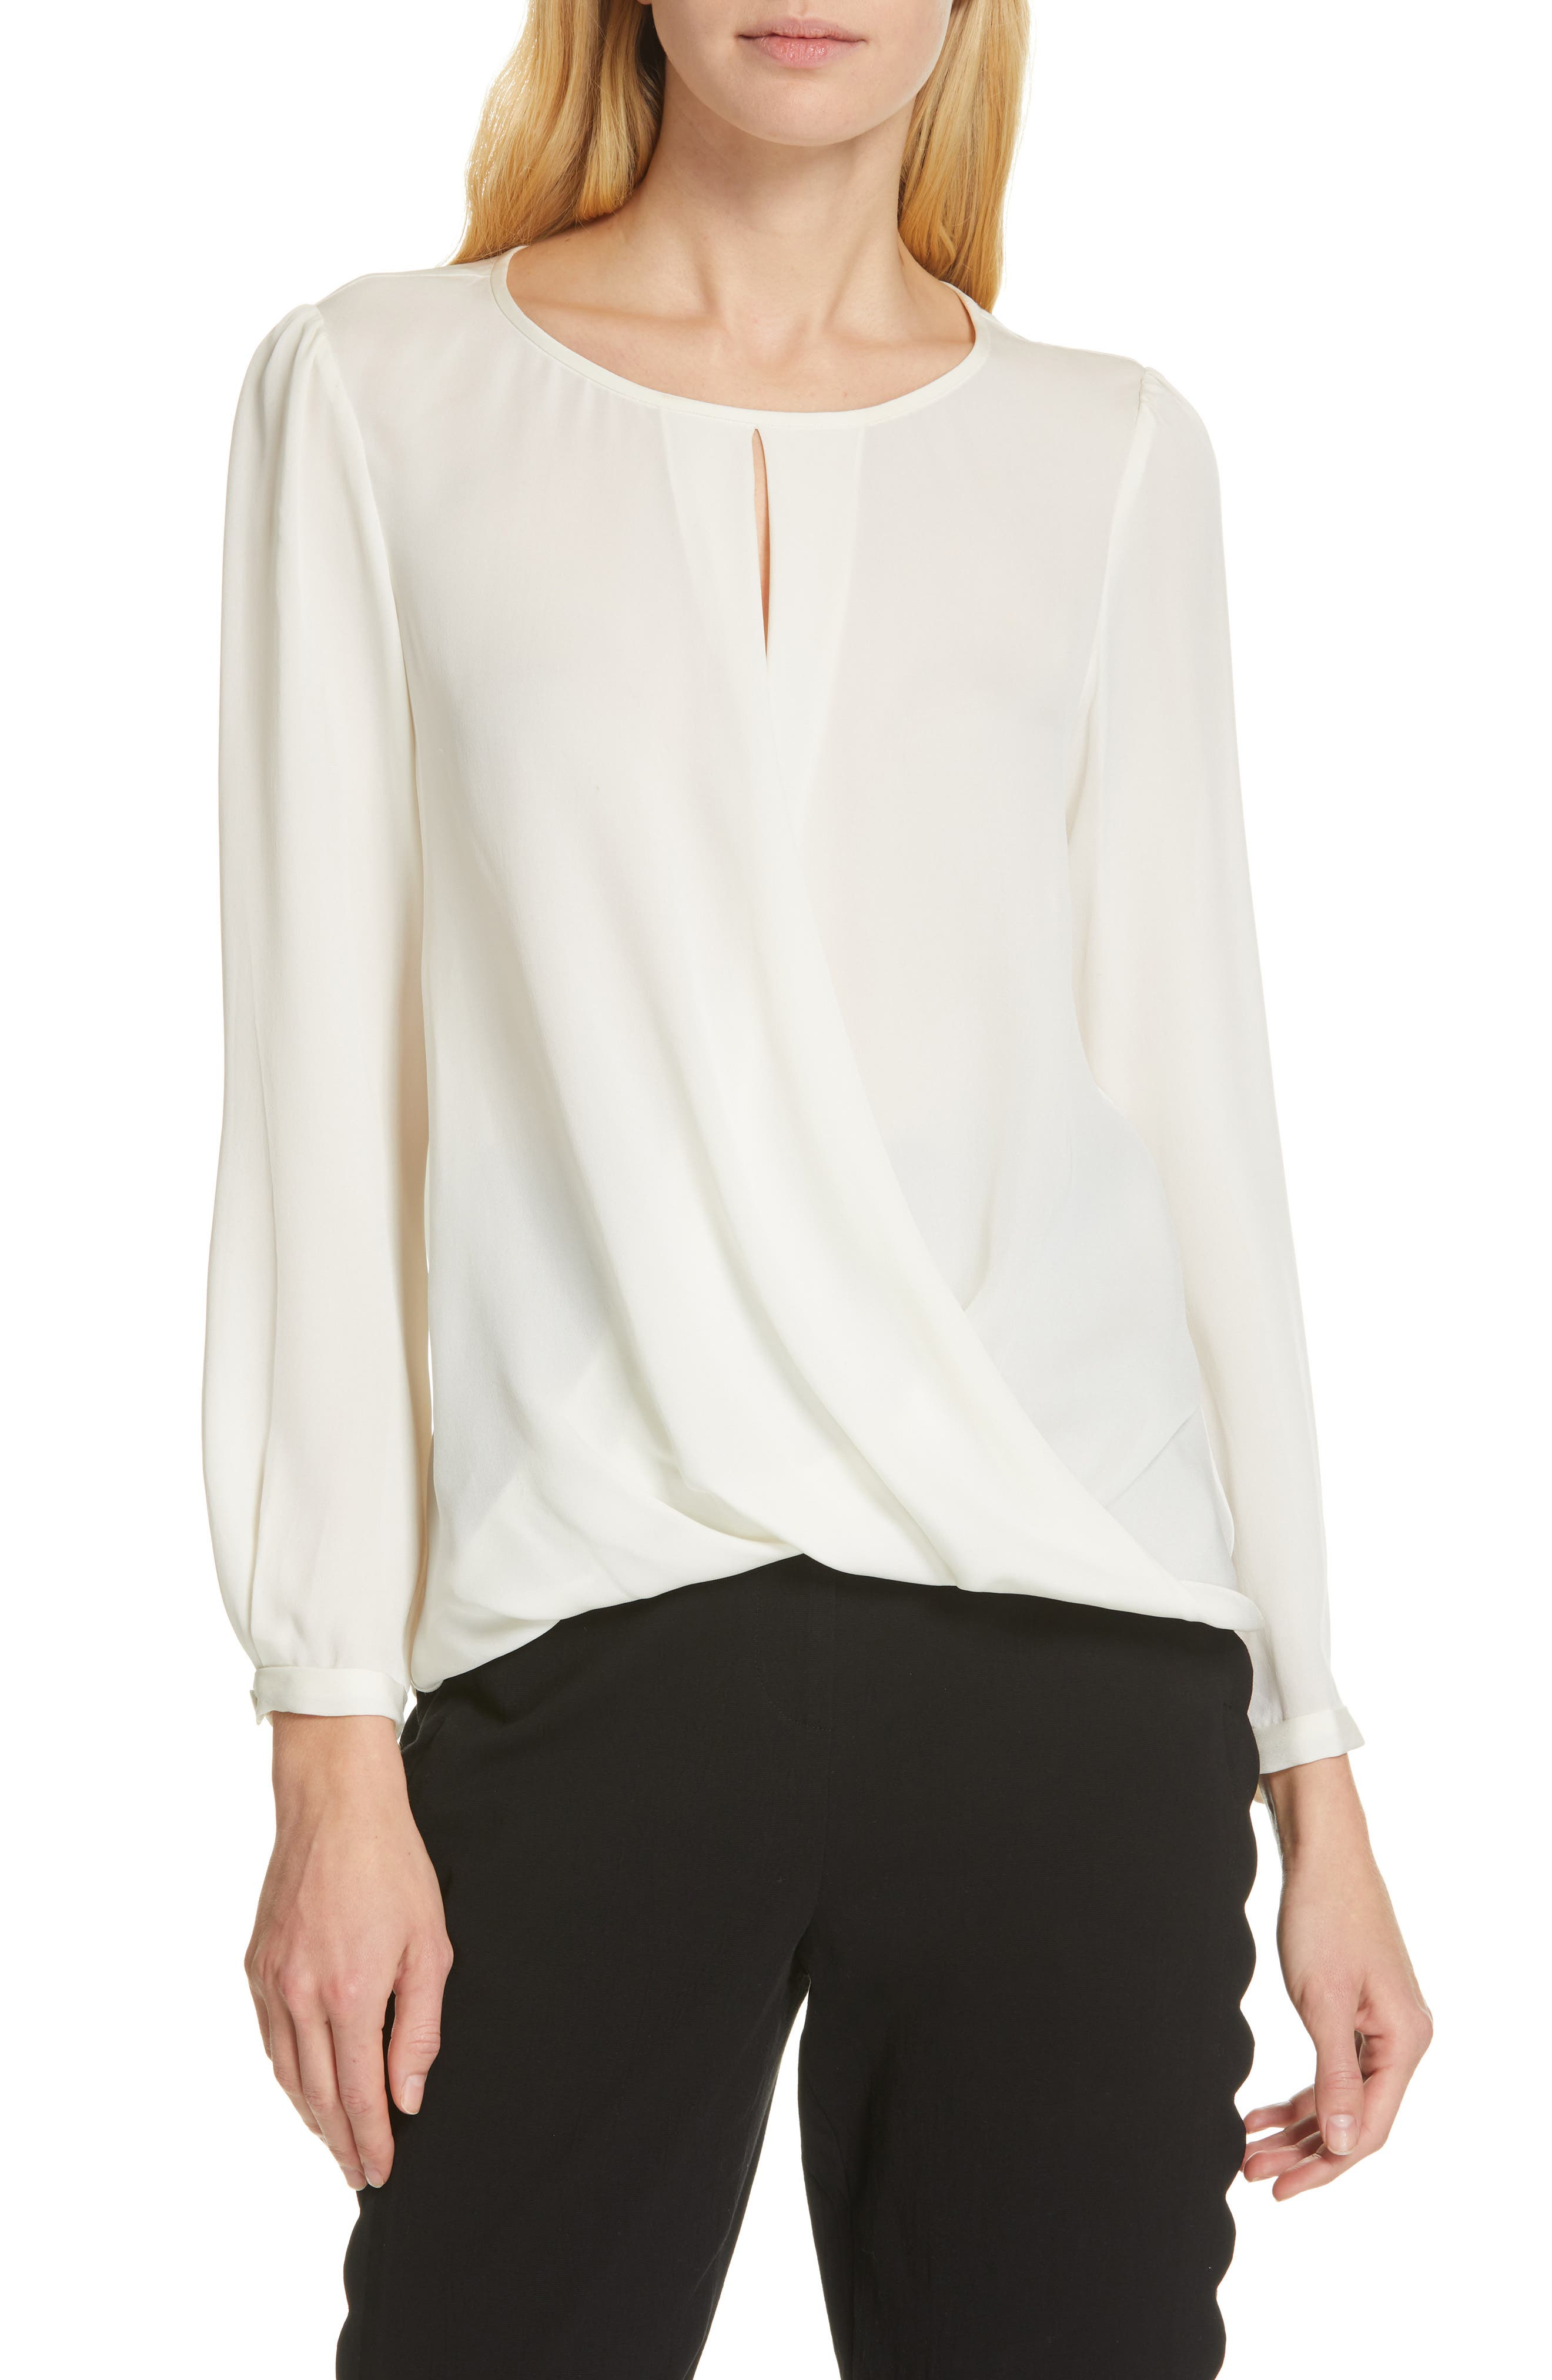 TAILORED BY REBECCA TAYLOR, Silk Georgette Top, Main thumbnail 1, color, SNOW